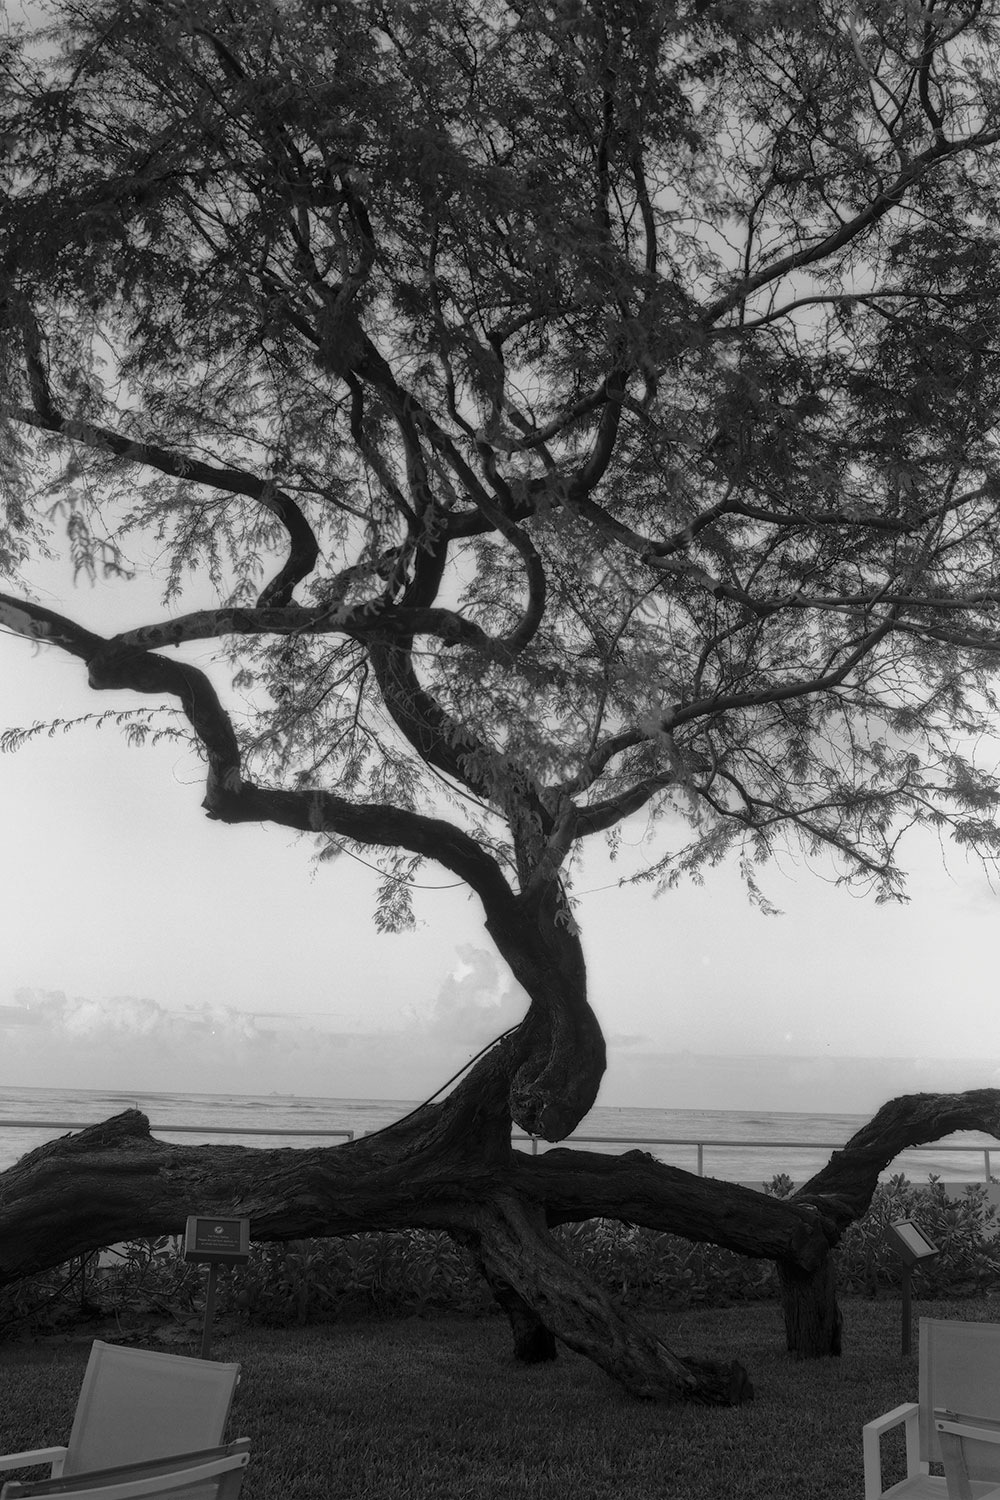 Black and white image of kiawe tree